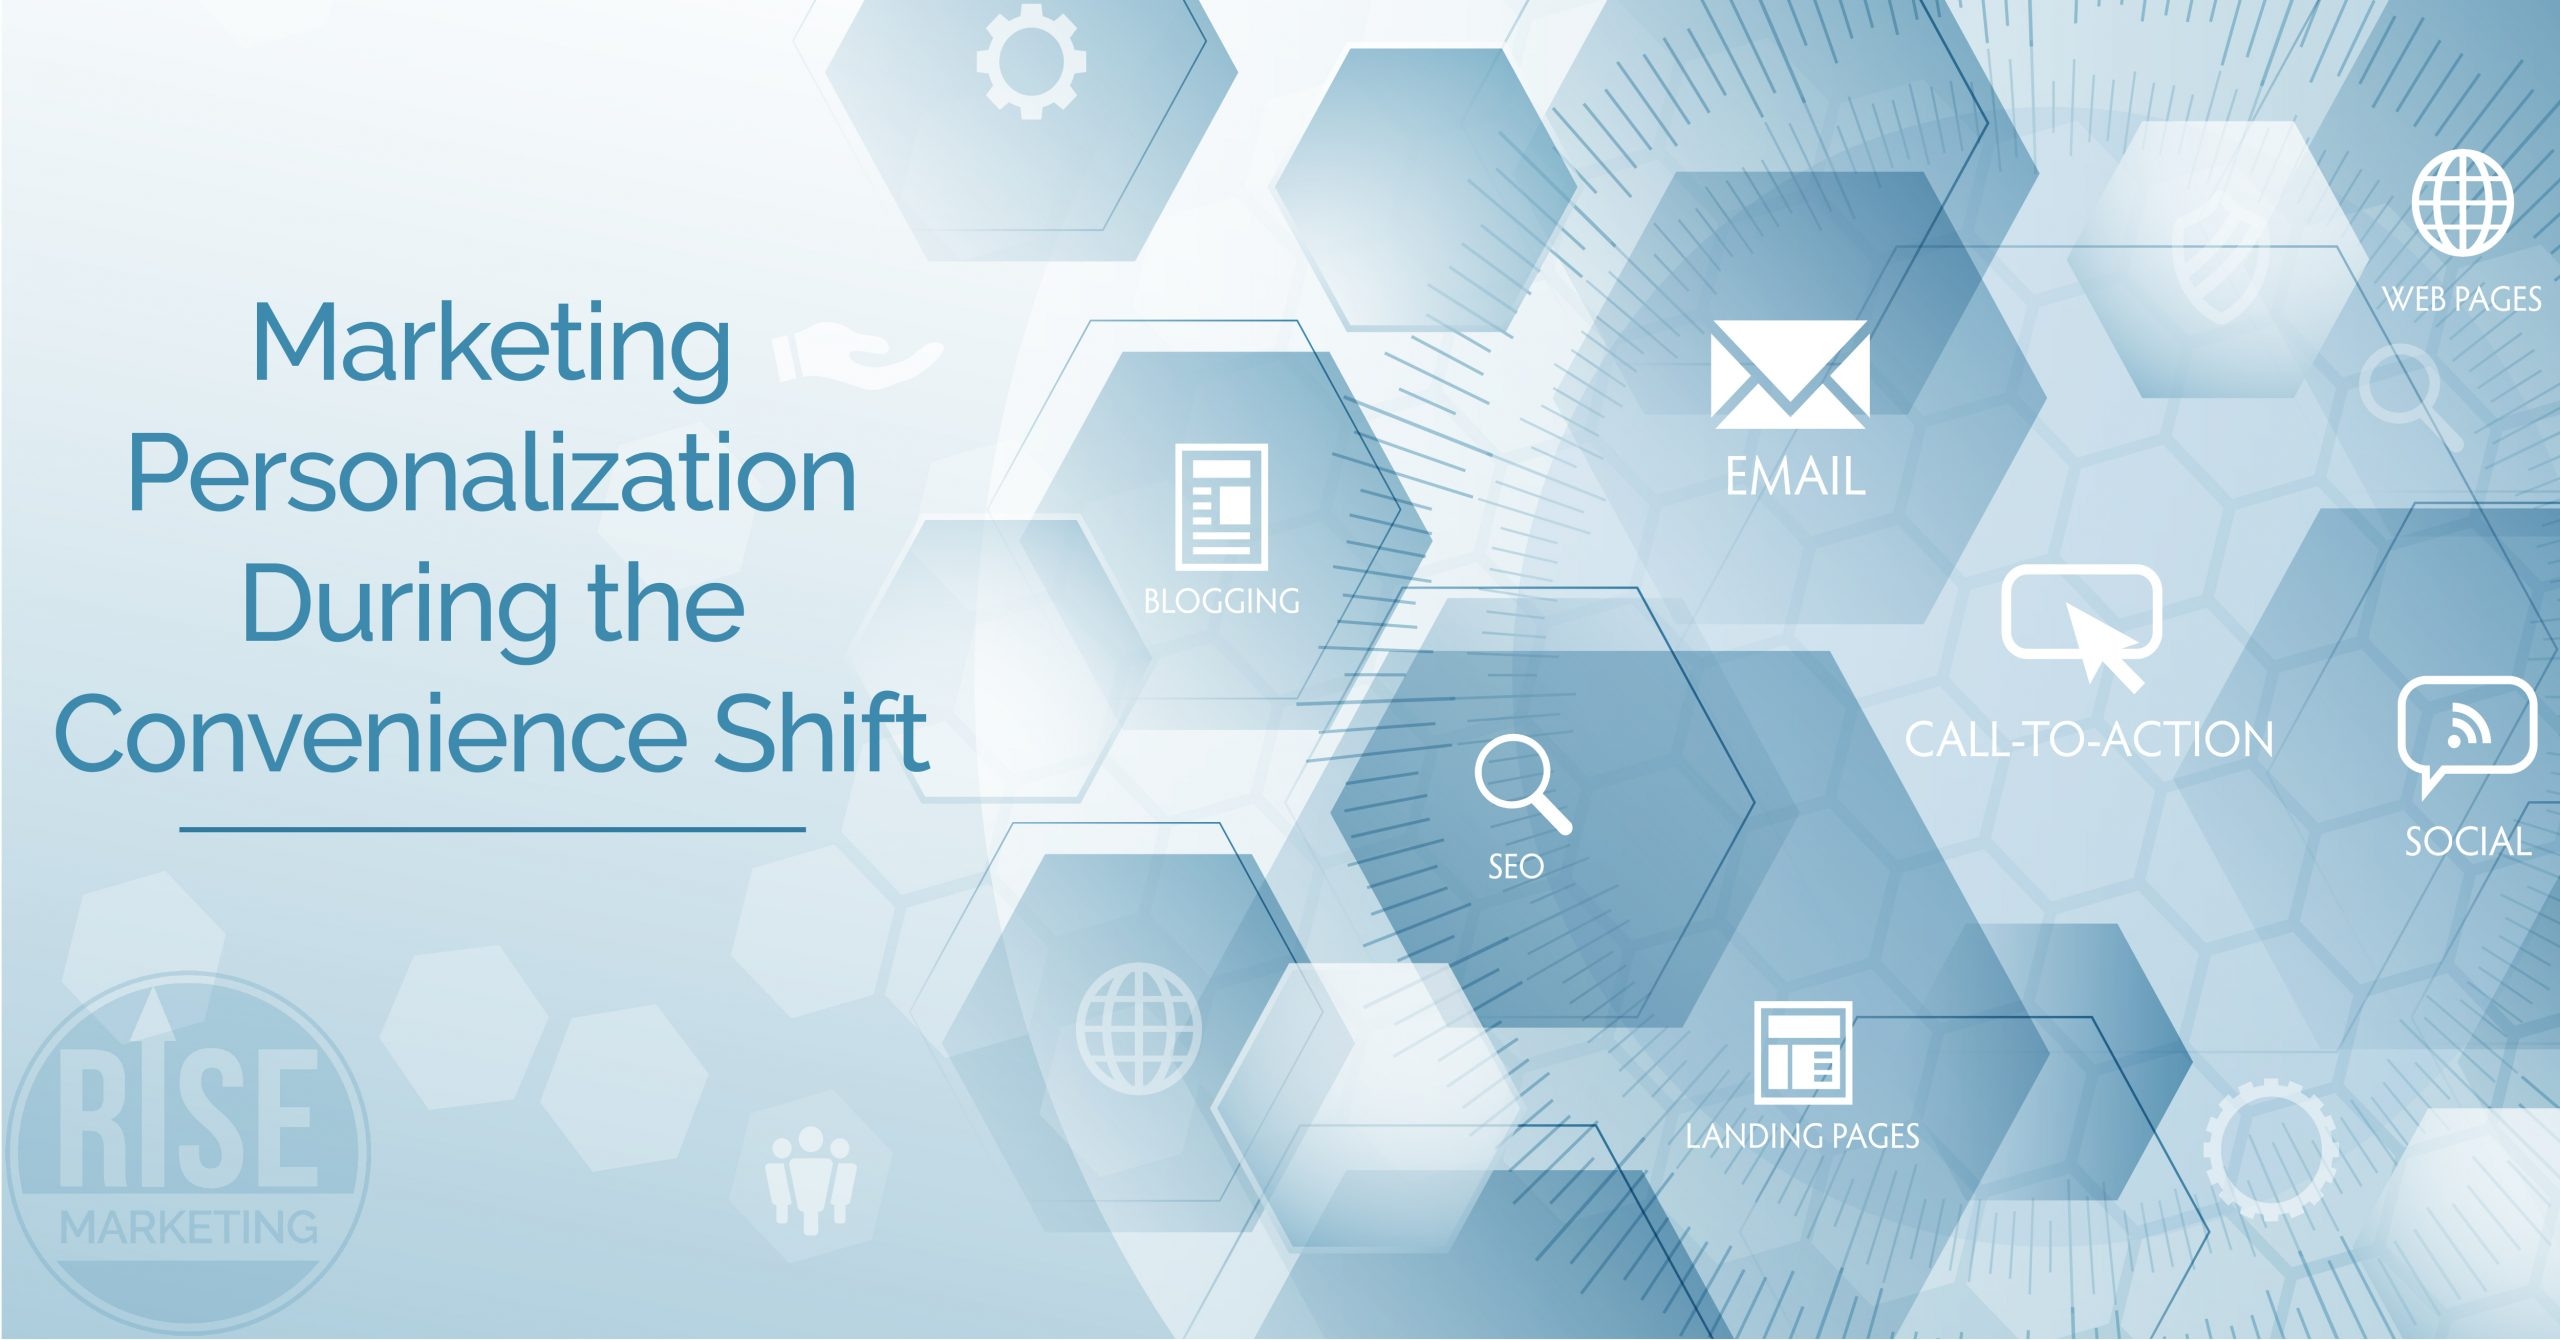 Marketing Personalization During the Convenience Shift